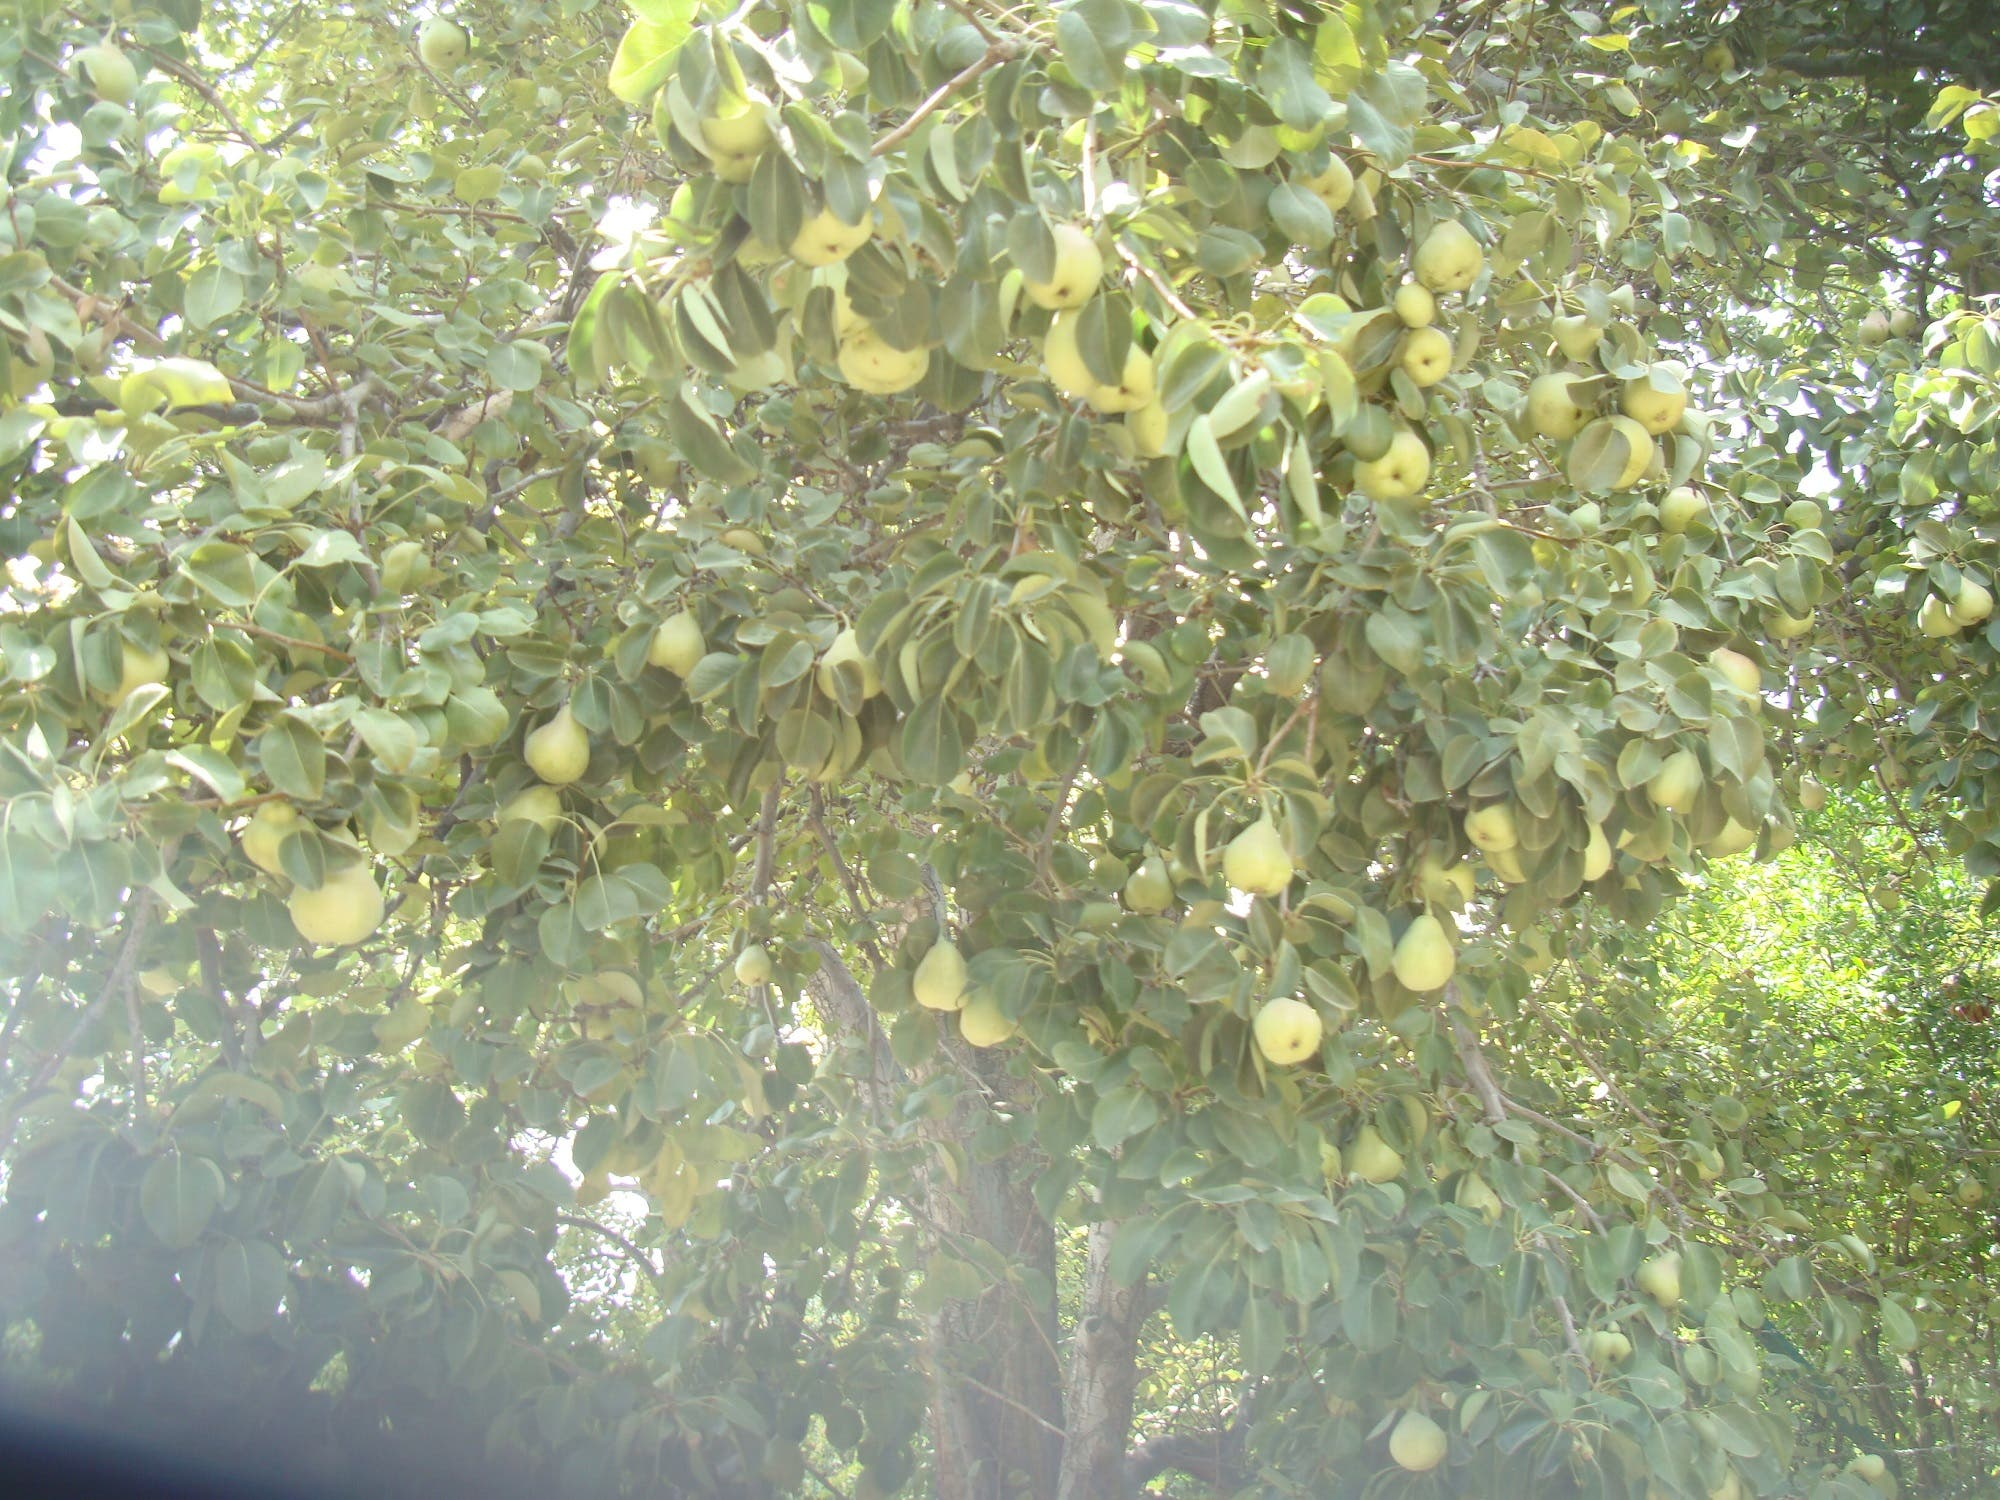 Pears growing in the valleys of Jabal al-Akhdar. (Supplied)